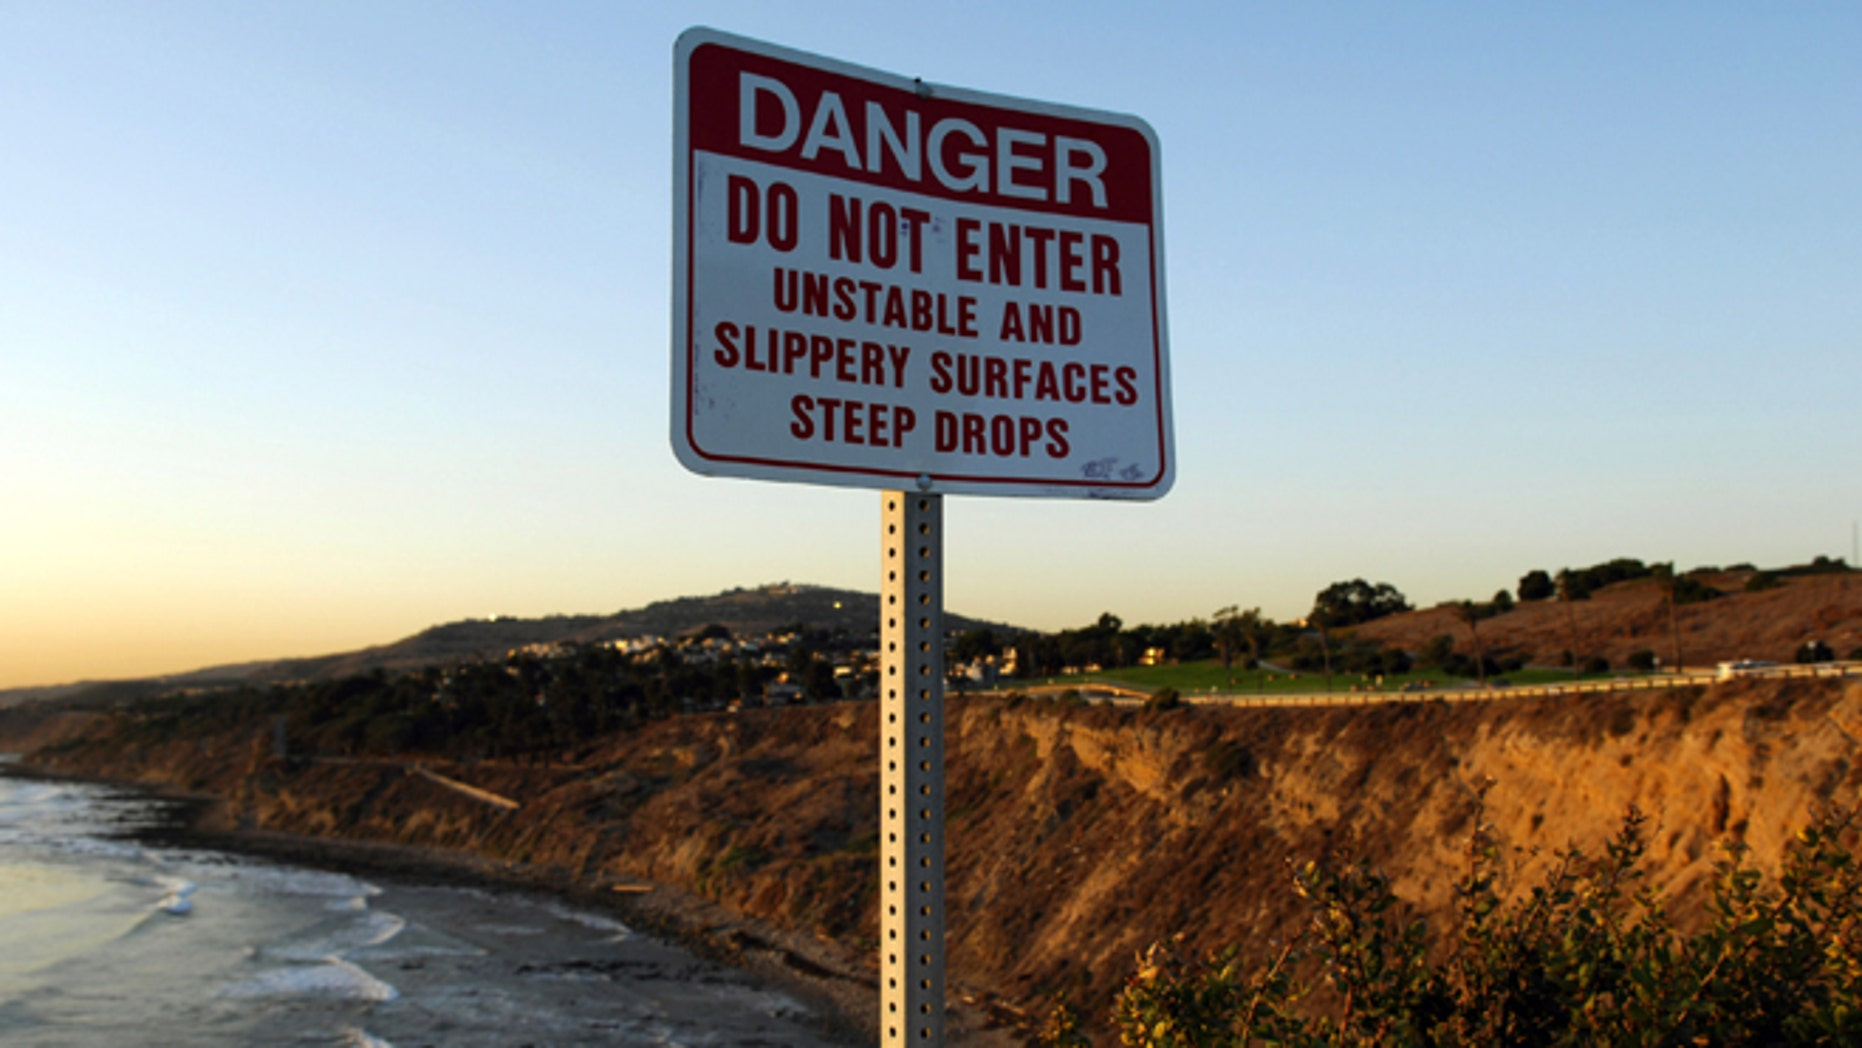 A Danger sign at Point Fermin Park in San Pedro, Calif. on Monday, January 8, 2007. The body of USC kicker Mario Danelo, 21, was found at the bottom of the rocky San Pedro cliff on Jan. 6. Los Angeles Police Department officials have ruled the death either an accident or suicide. (Photo by Kirby Lee/Getty Images)